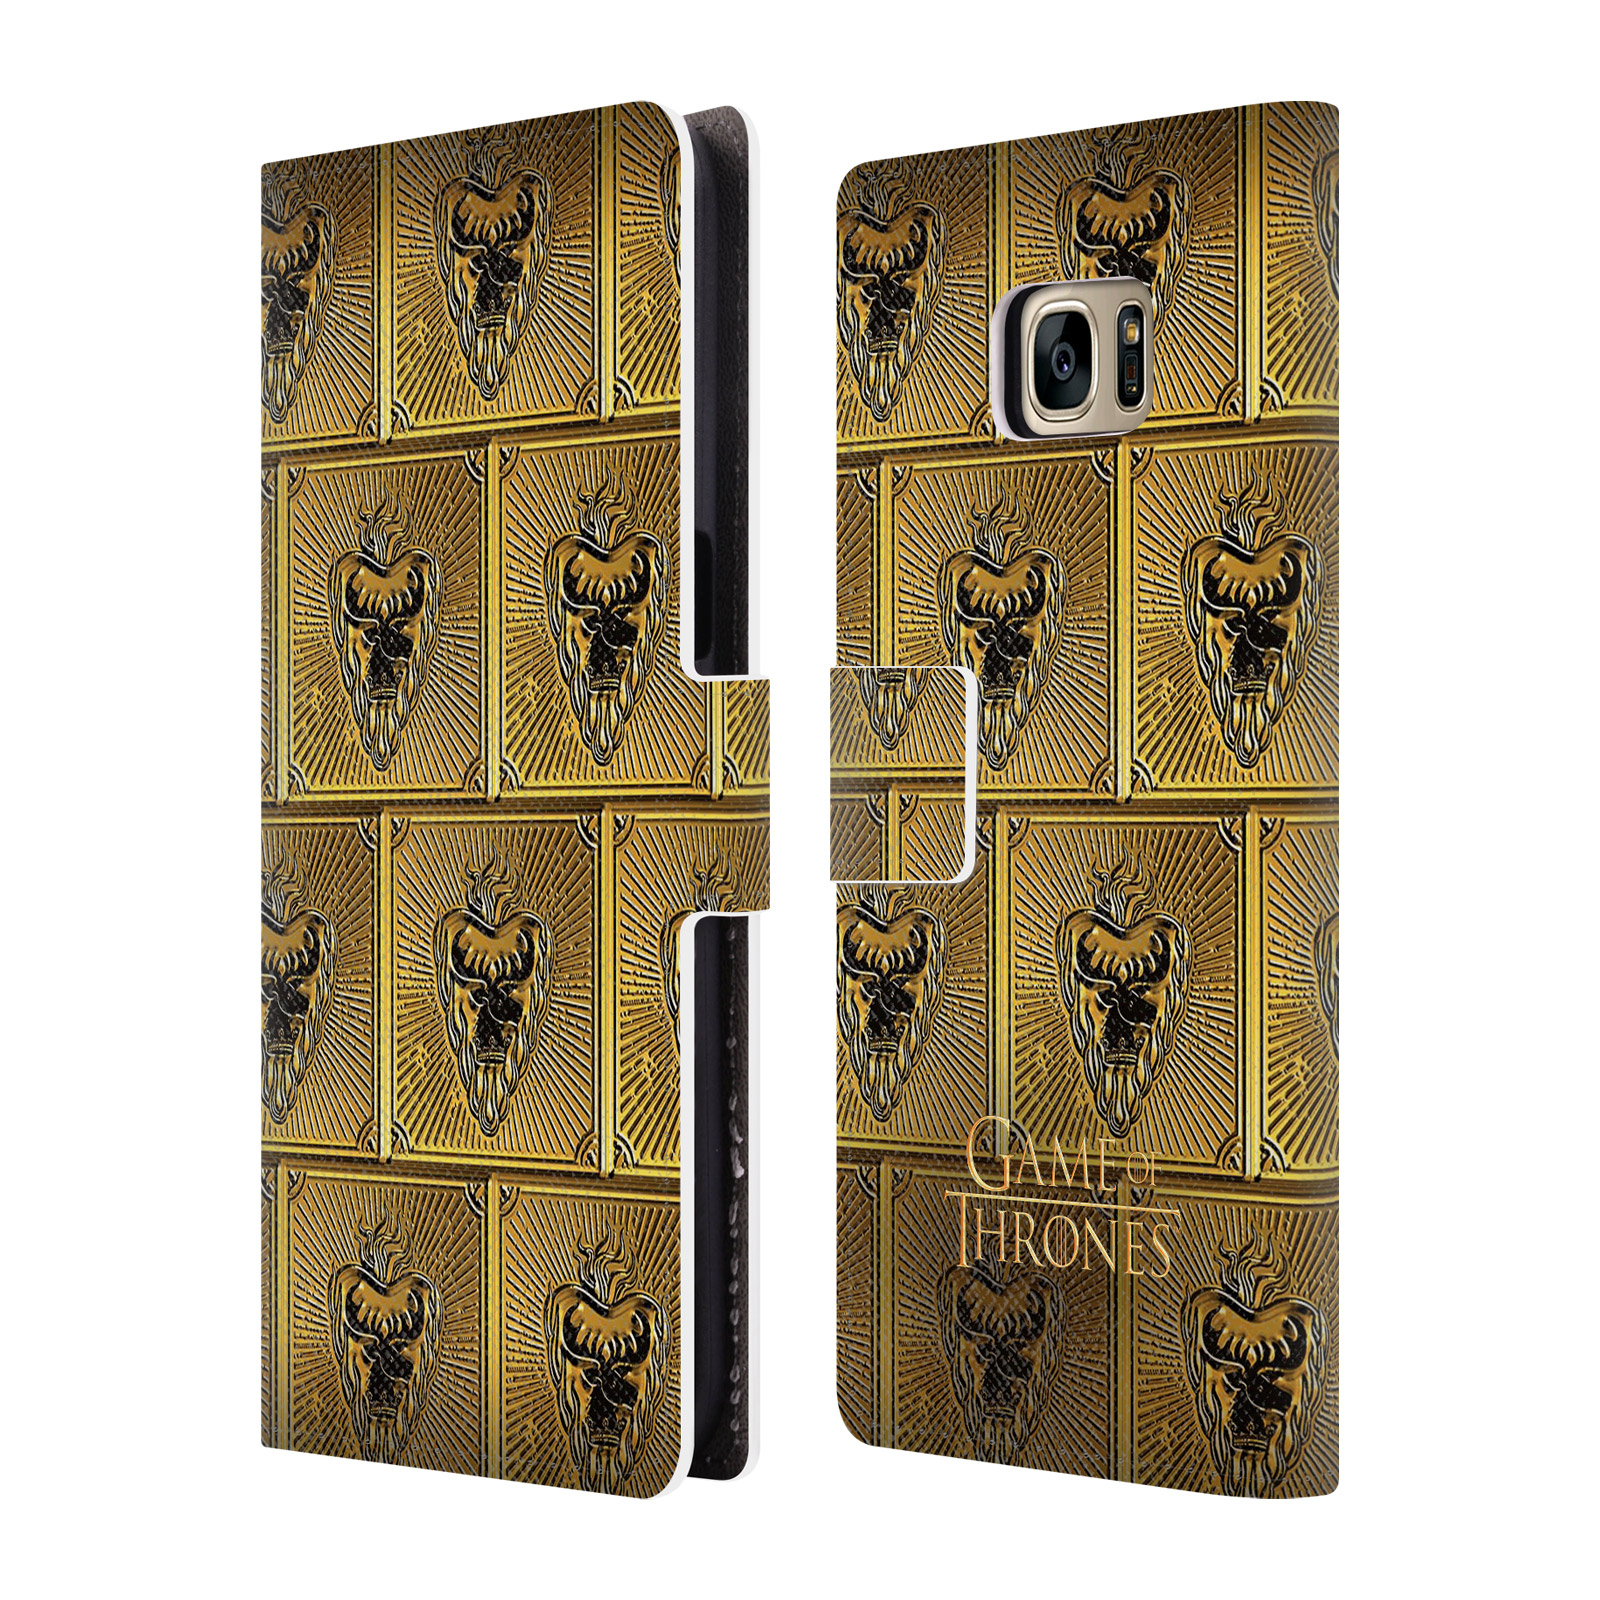 OFFICIAL HBO GAME OF THRONES GOLDEN SIGILS LEATHER BOOK WALLET CASE COVER FOR SAMSUNG PHONES 1